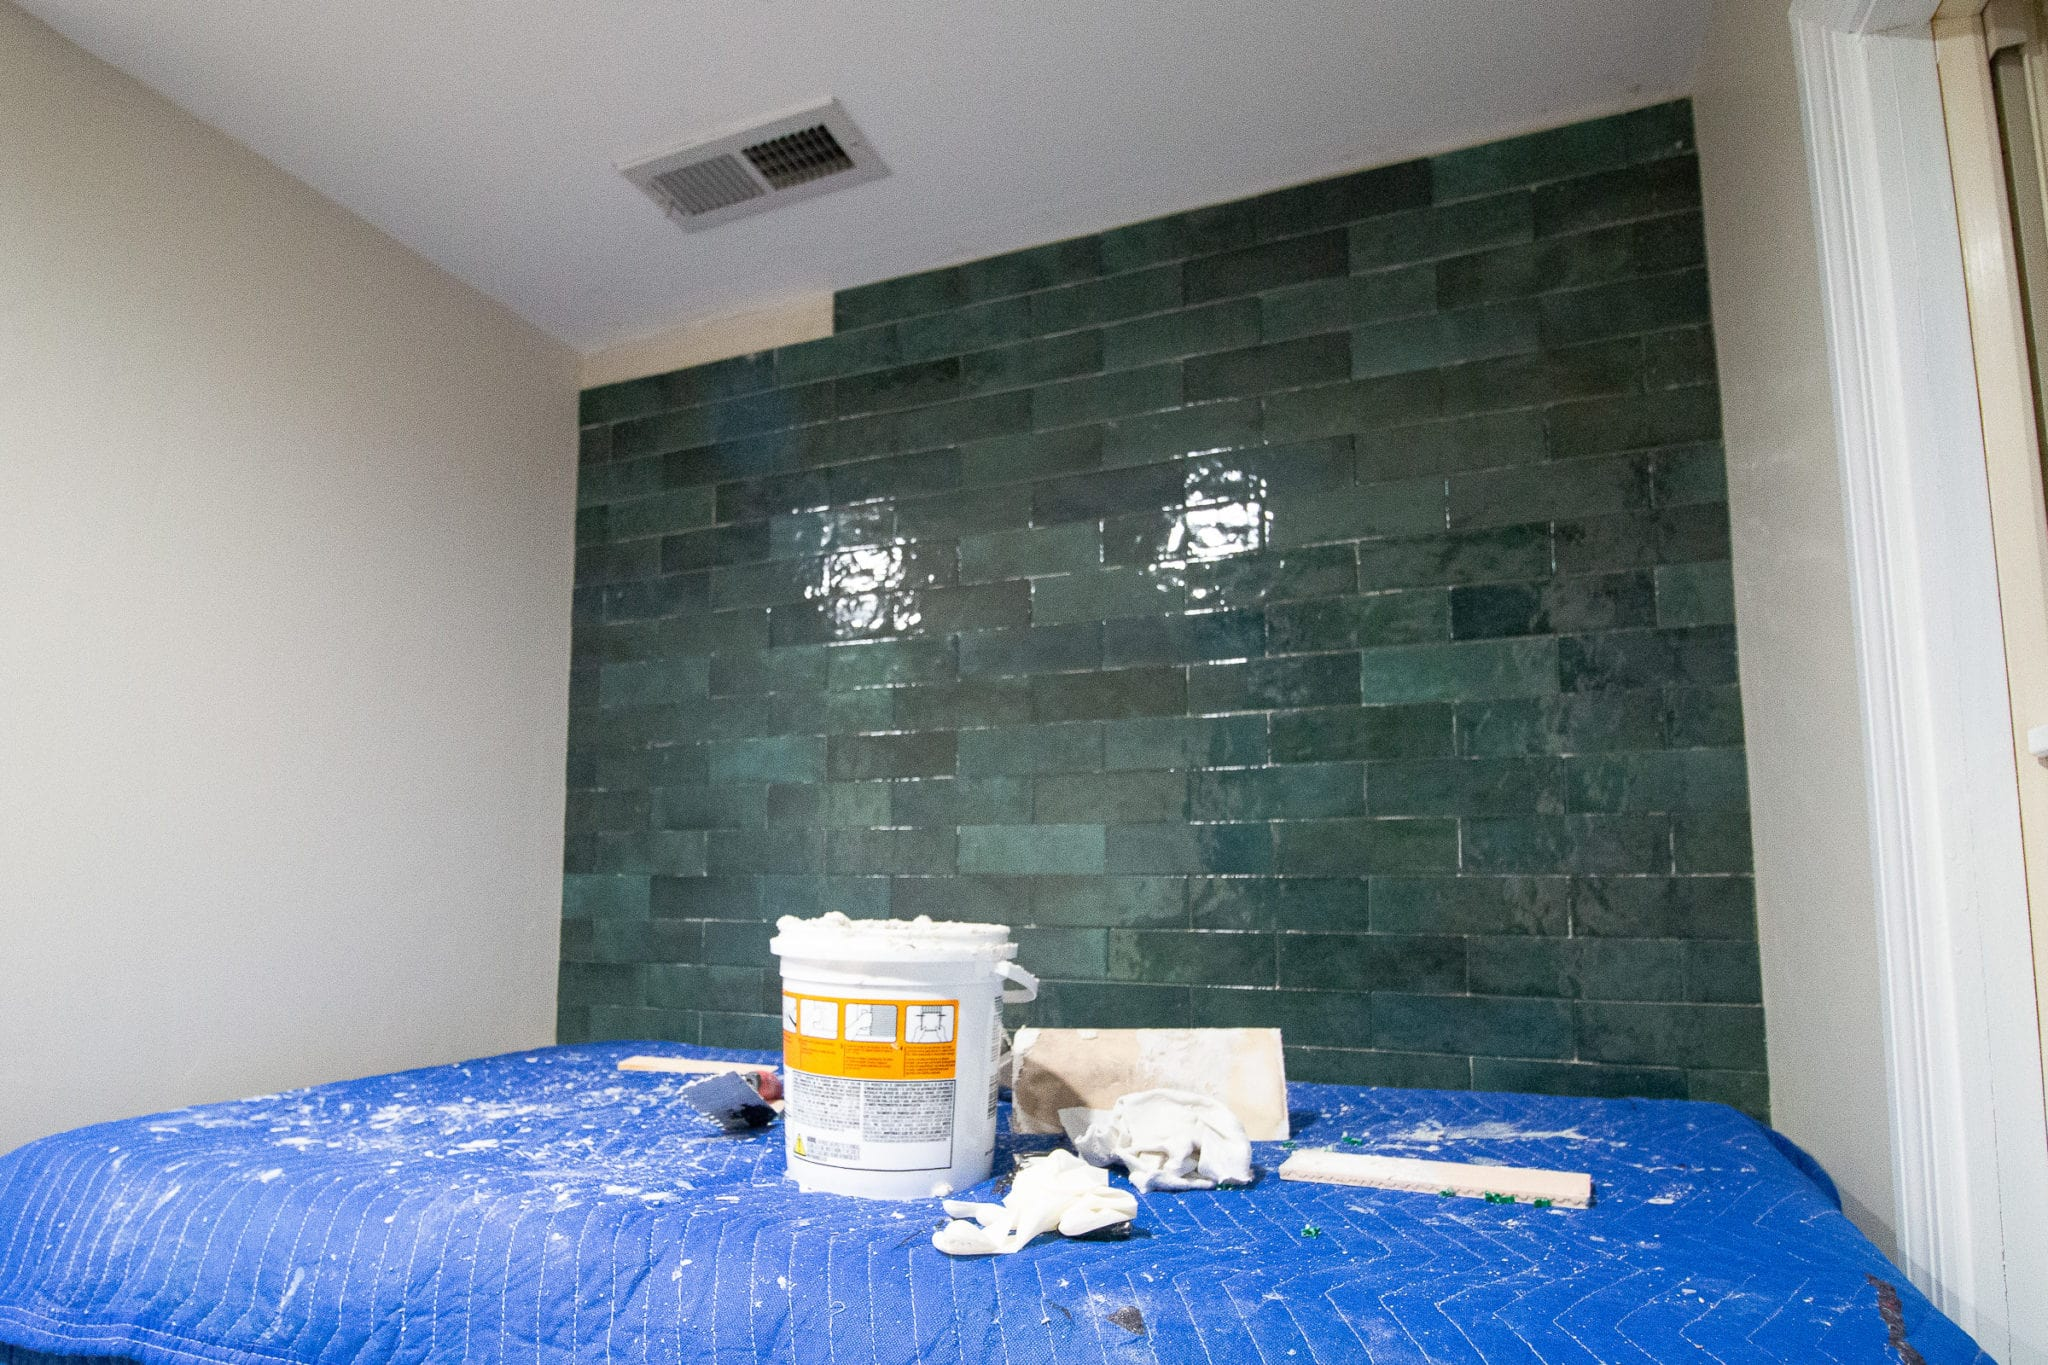 Using green tile in a laundry room